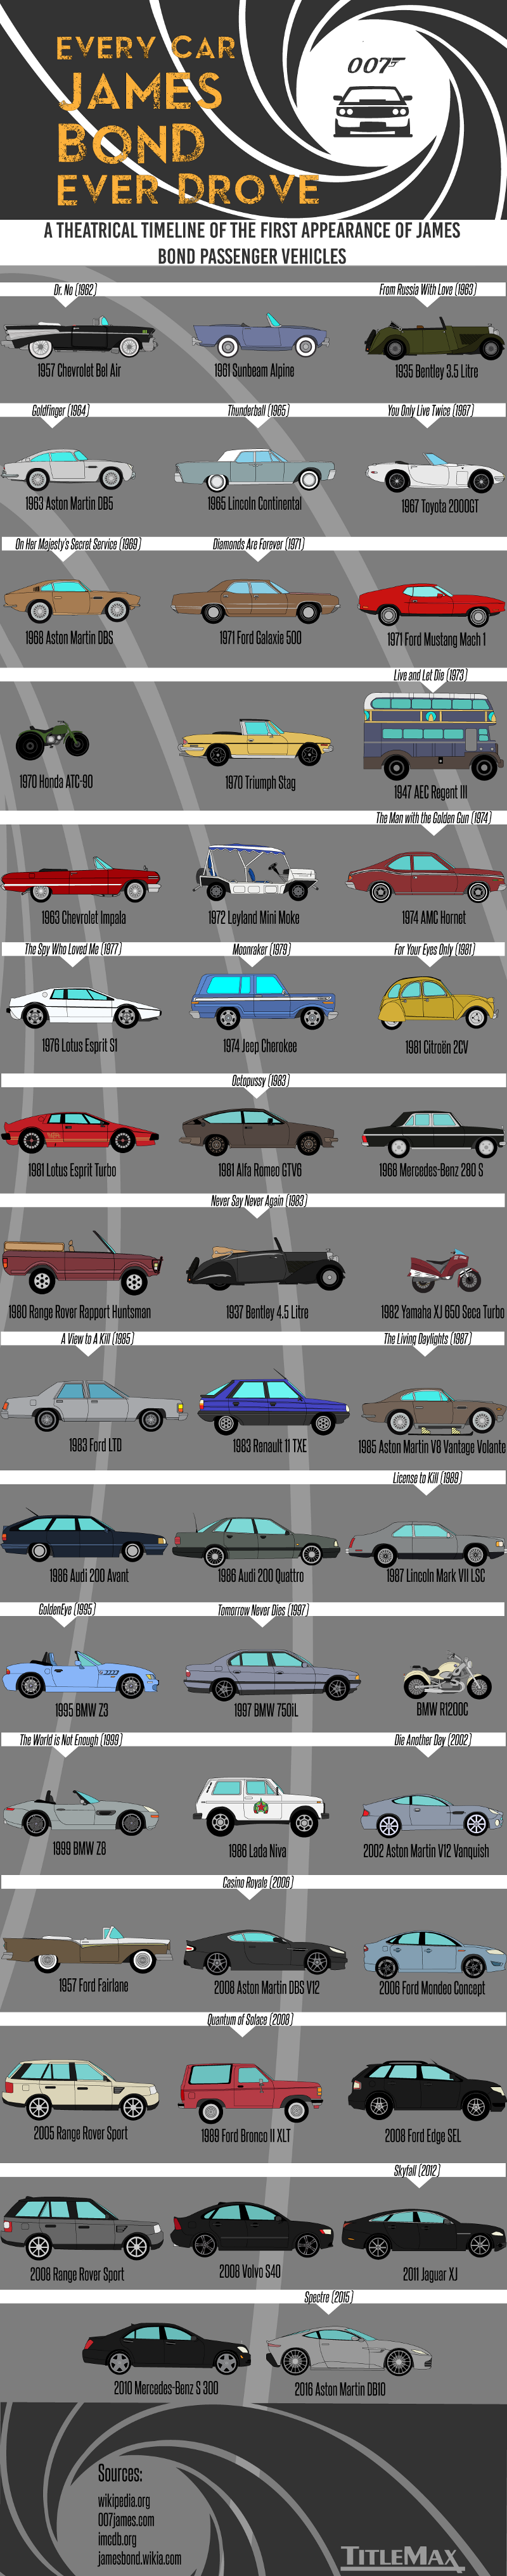 Every Car James Bond Ever Drove #Infographic